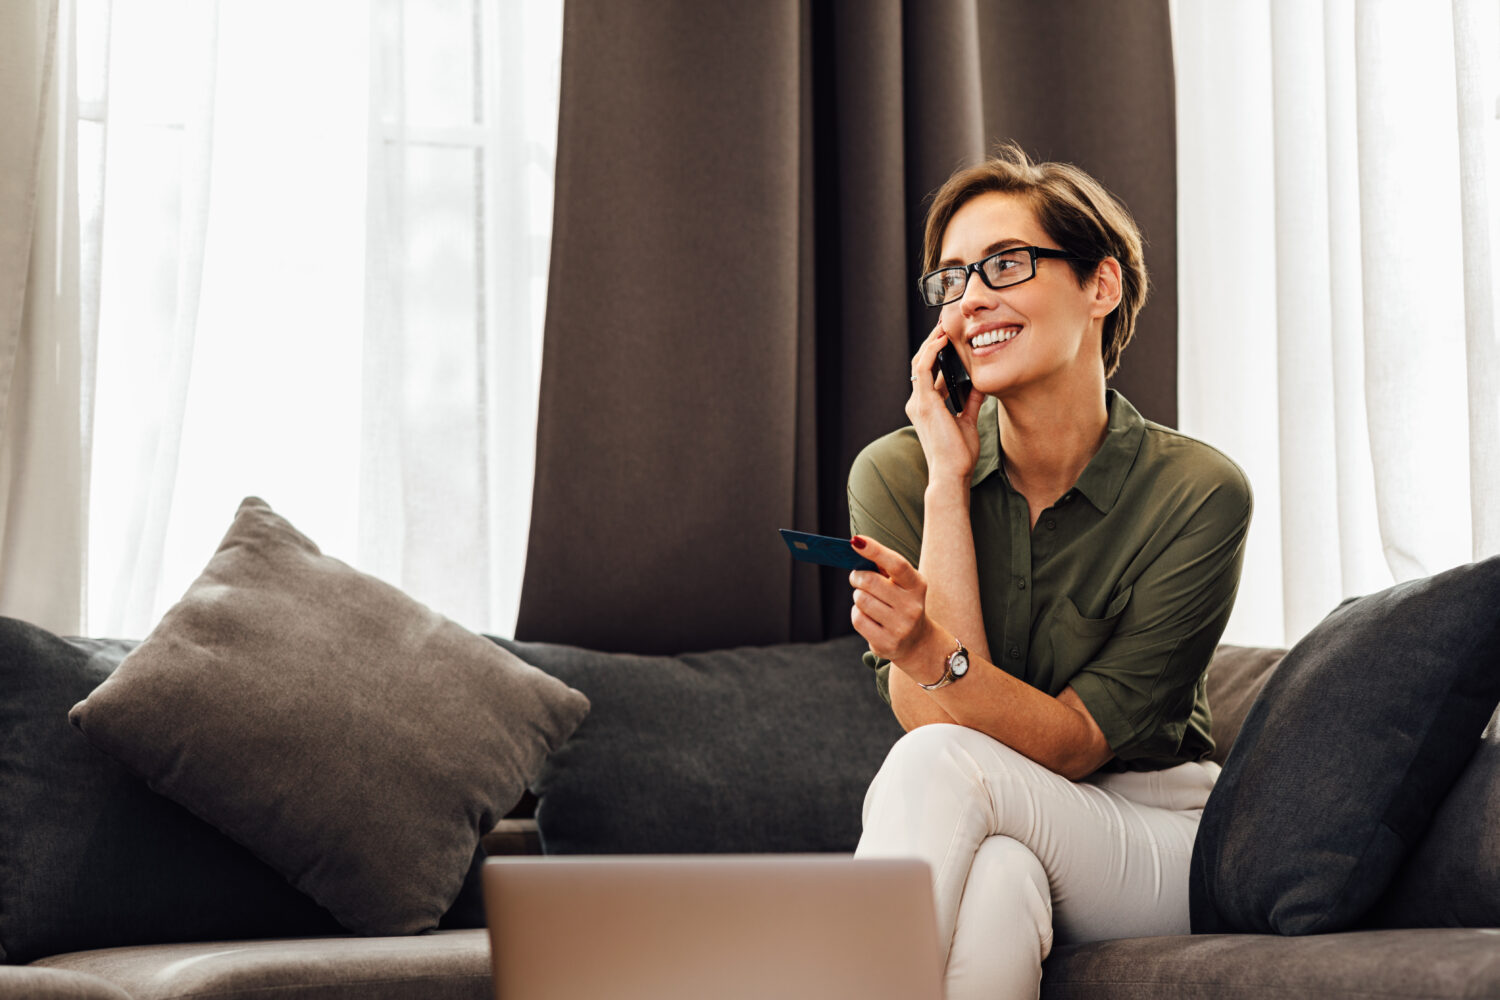 woman with short brown hair speaking on her phone in a hotel room